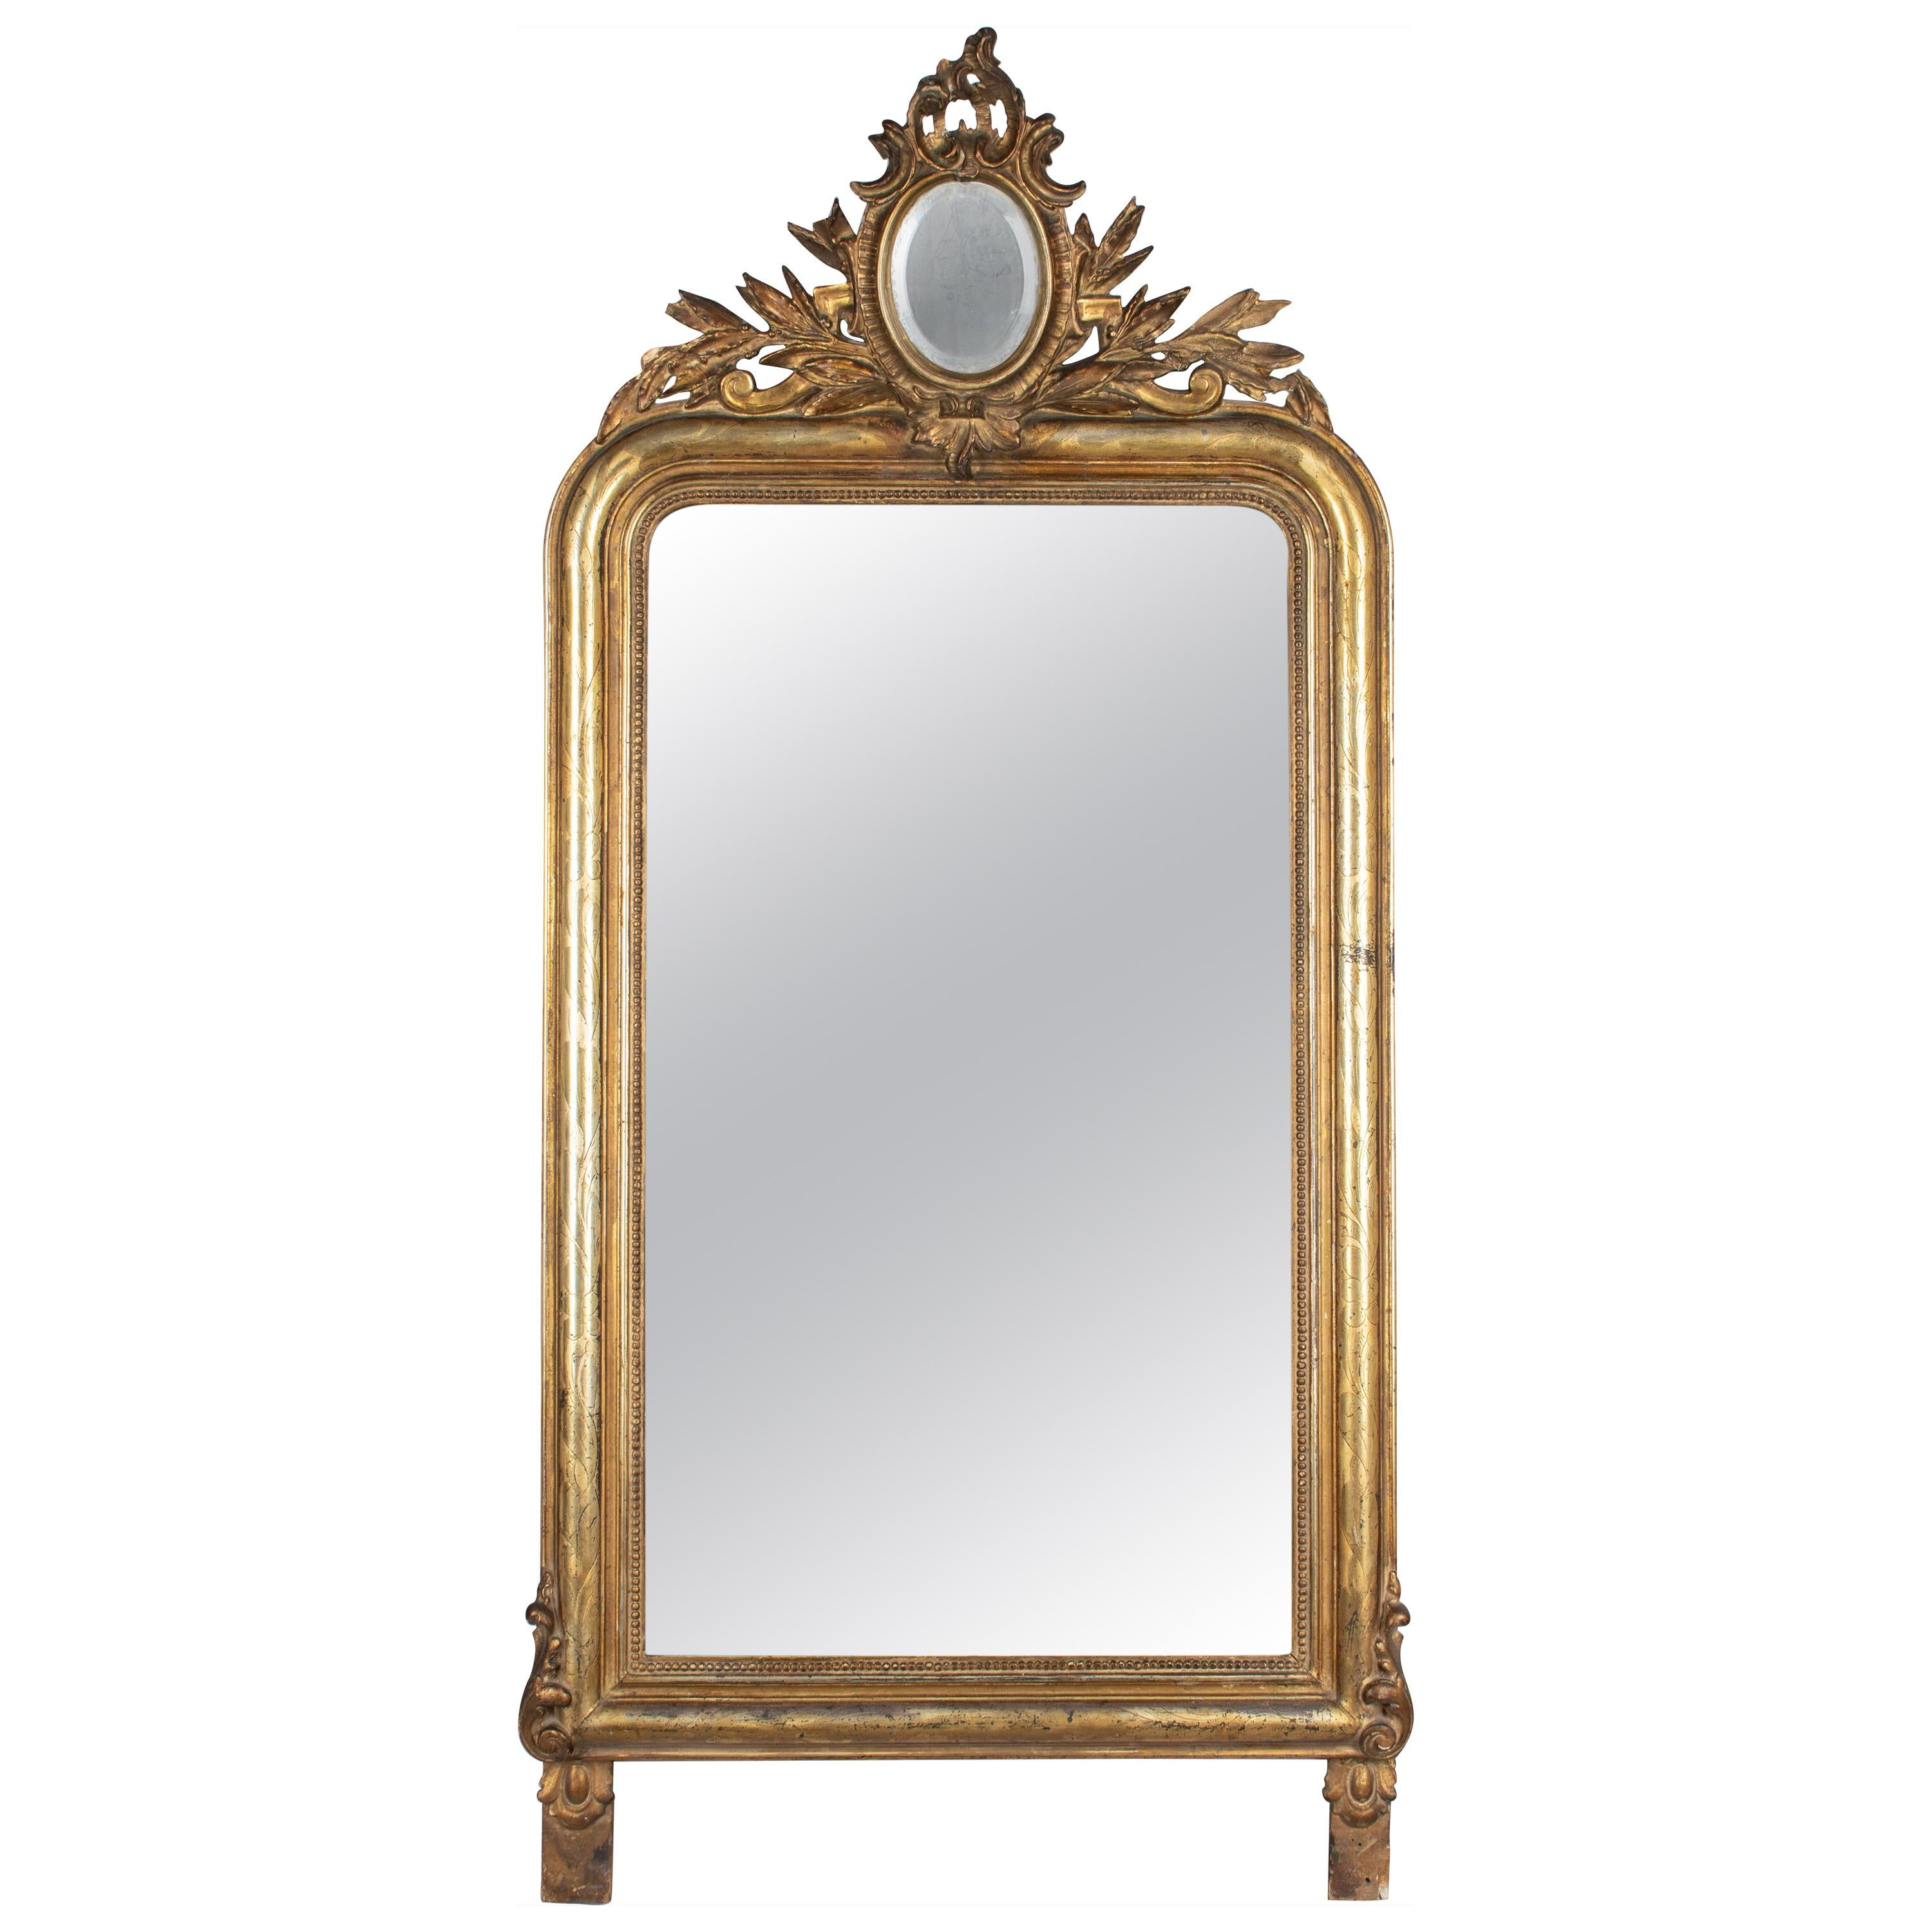 19th Century Louis Philippe Style Gilded Mirror with Oval Crest